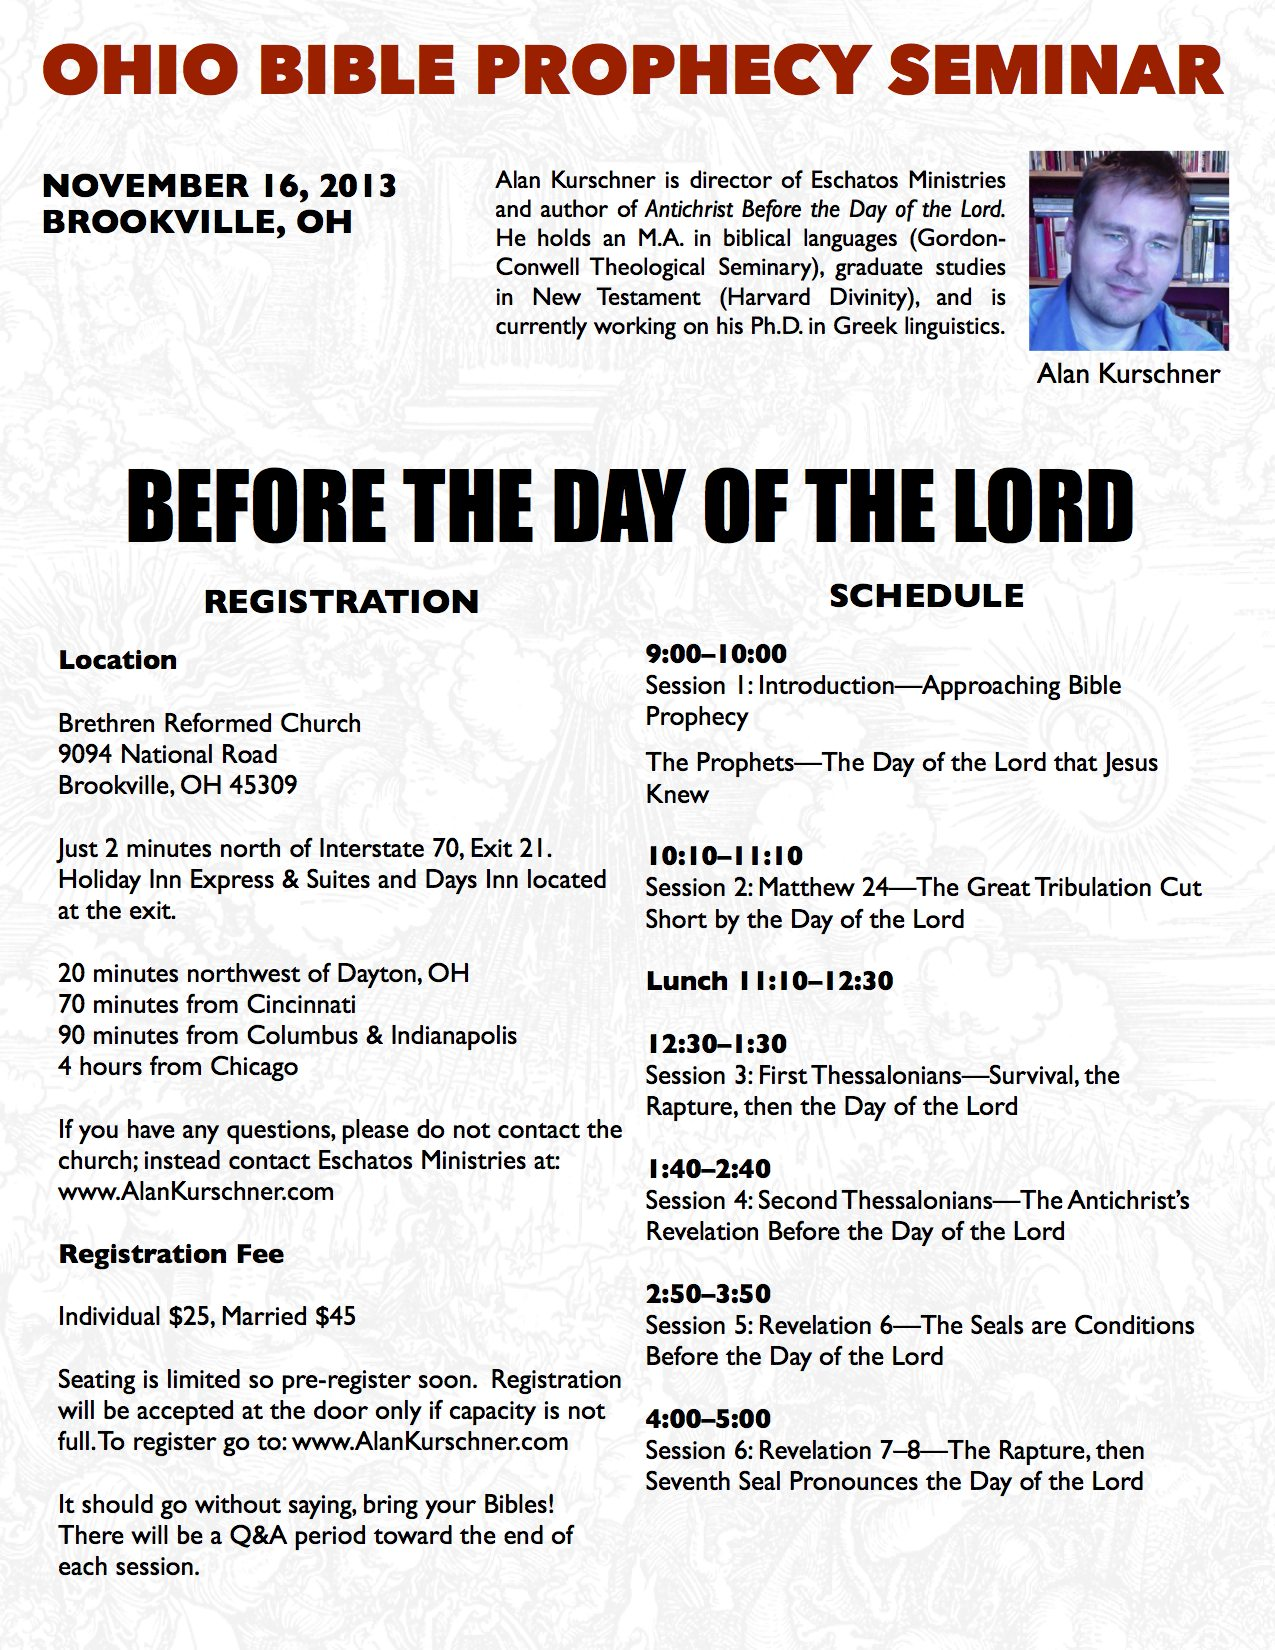 Ohio Bible Prophecy Seminar 2013